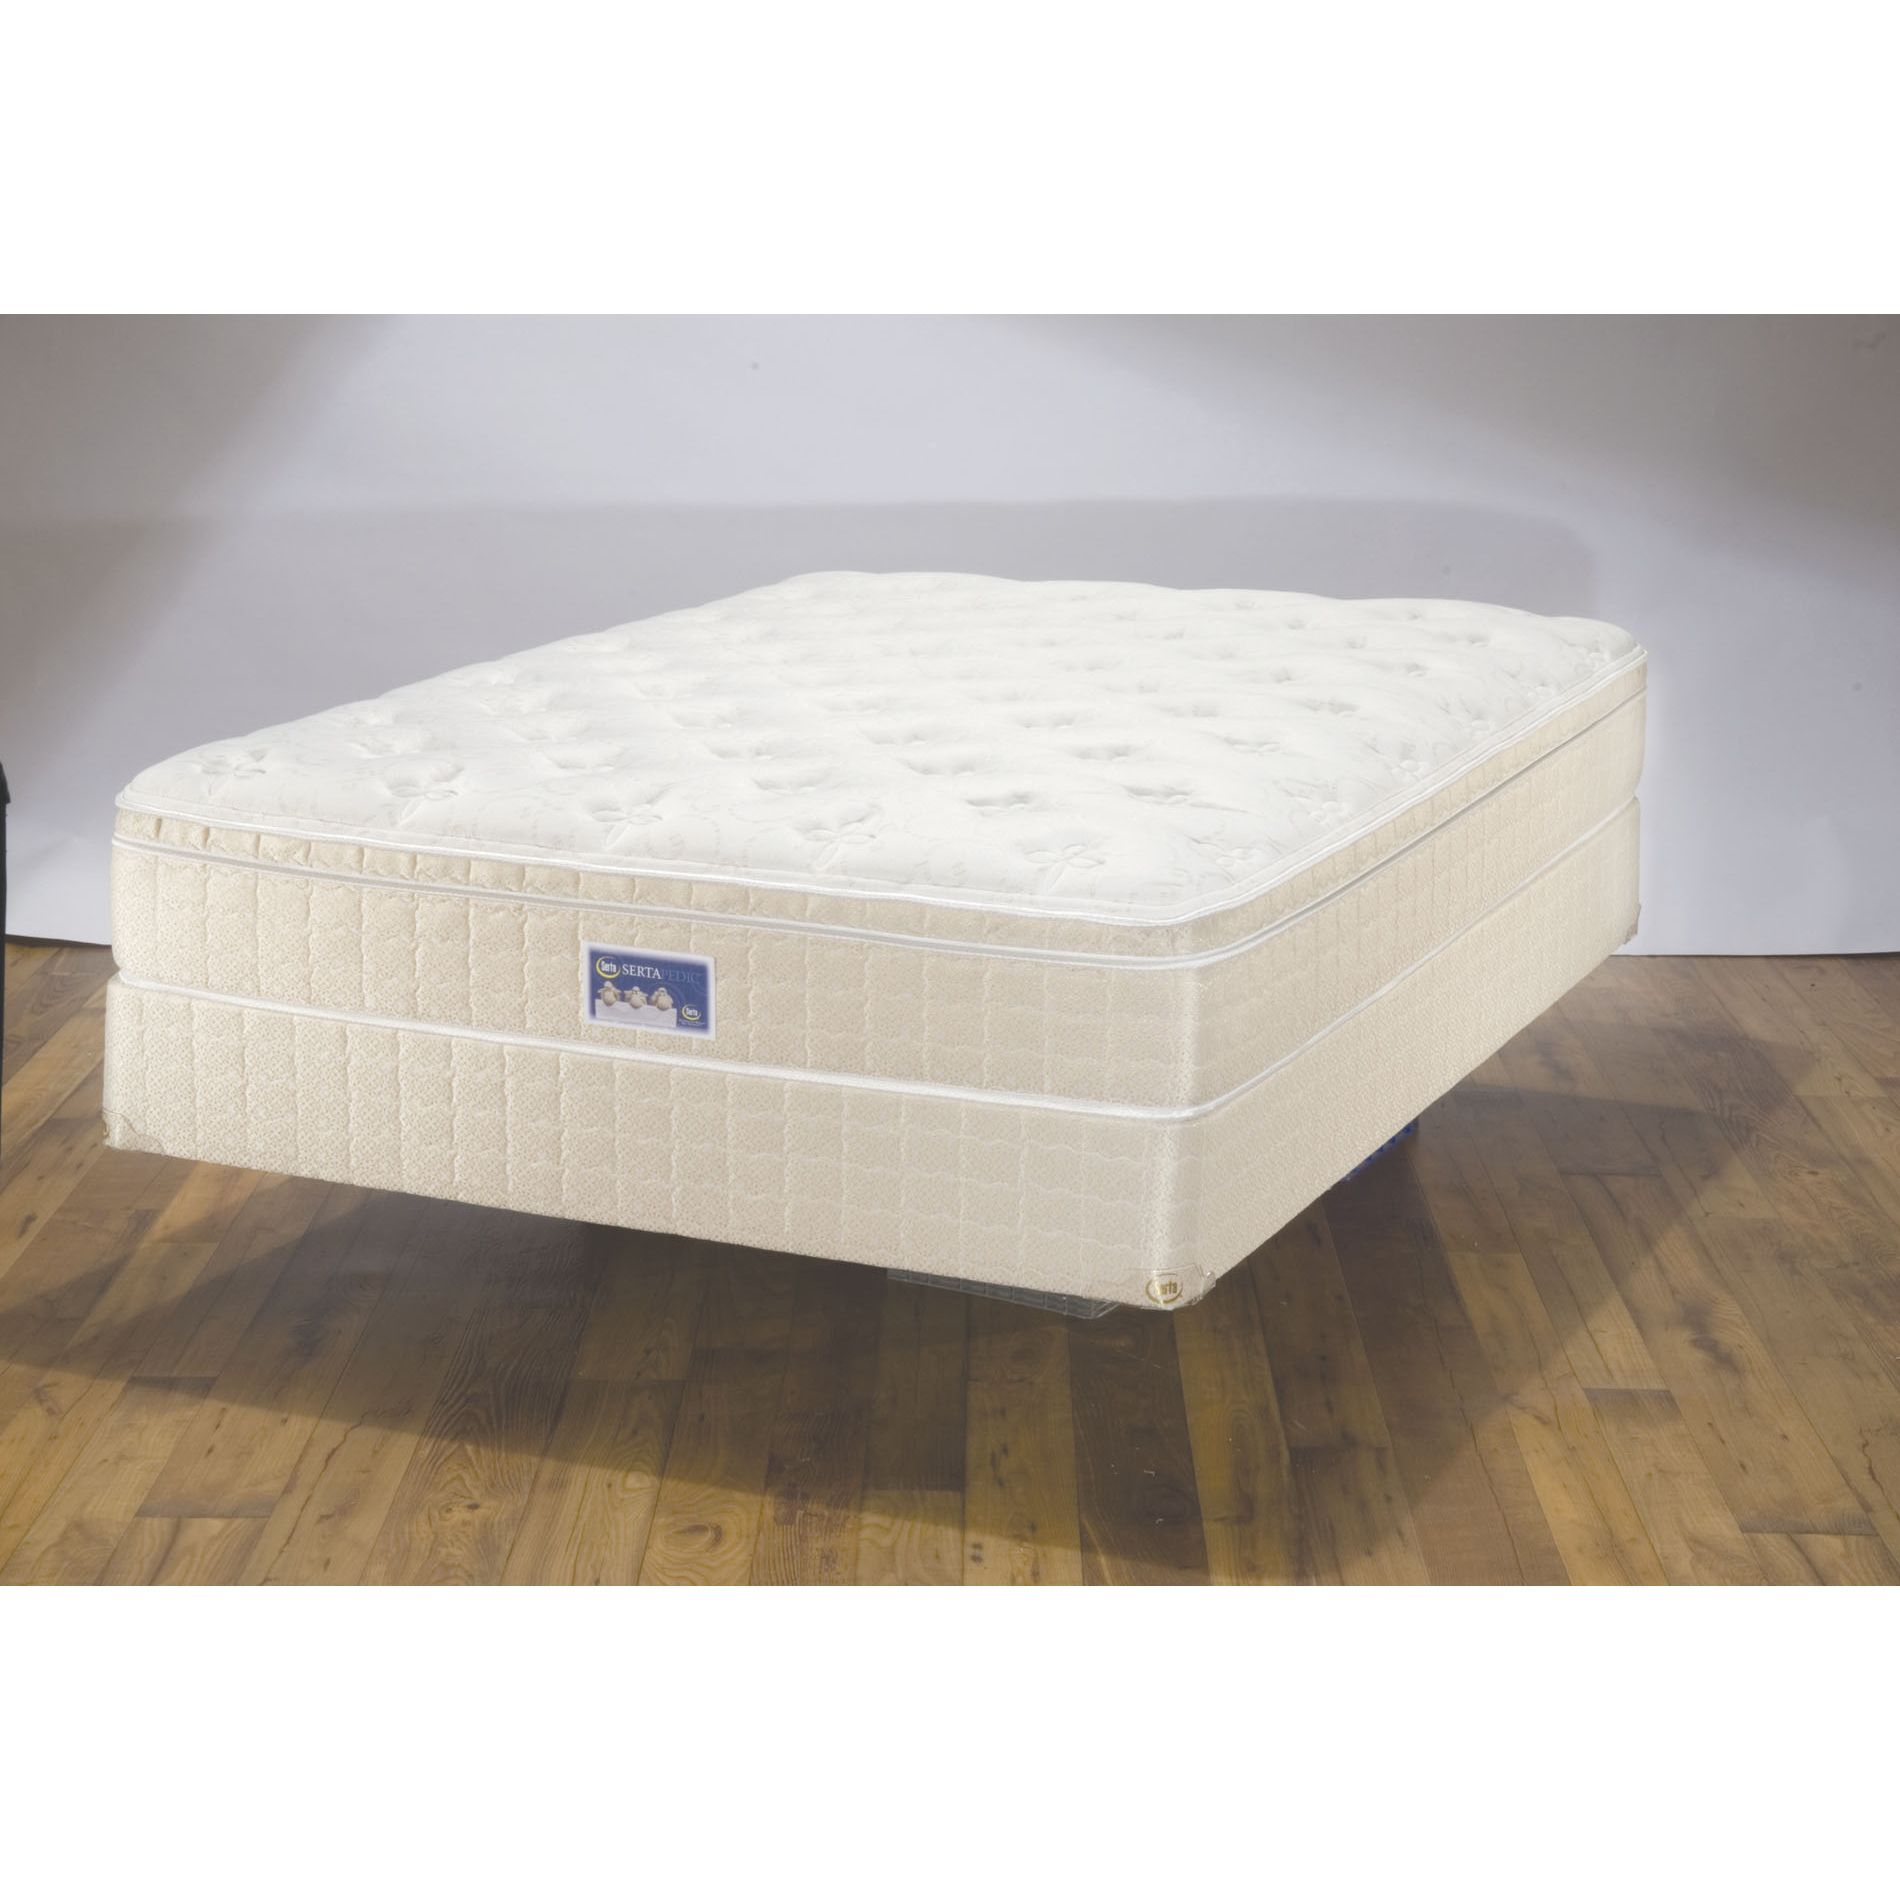 Baby Mattress Kmart Sears O Pedic Gazelle Eurotop Twin Mattress Only Home